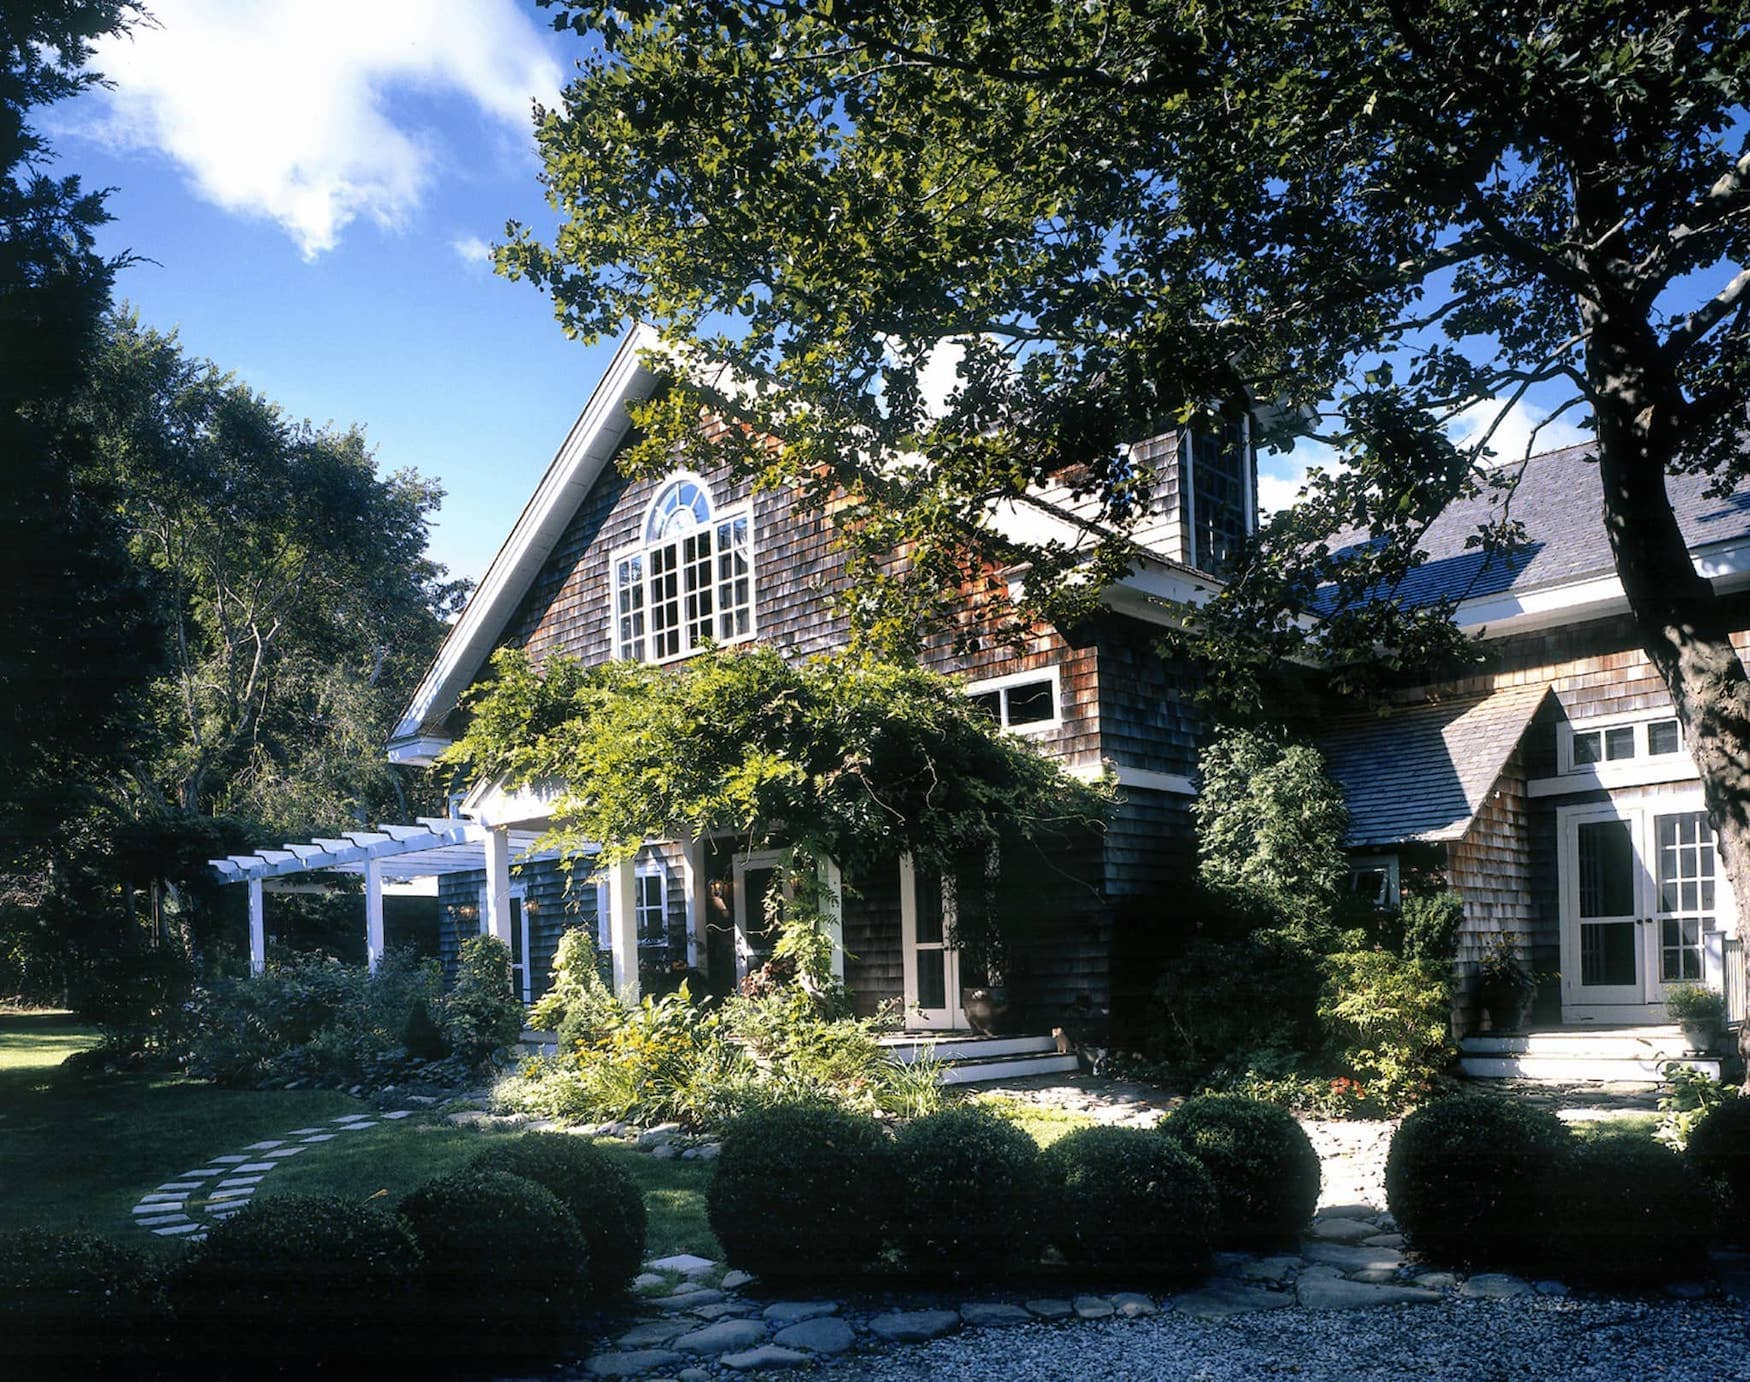 Exterior of Quogue Residence.